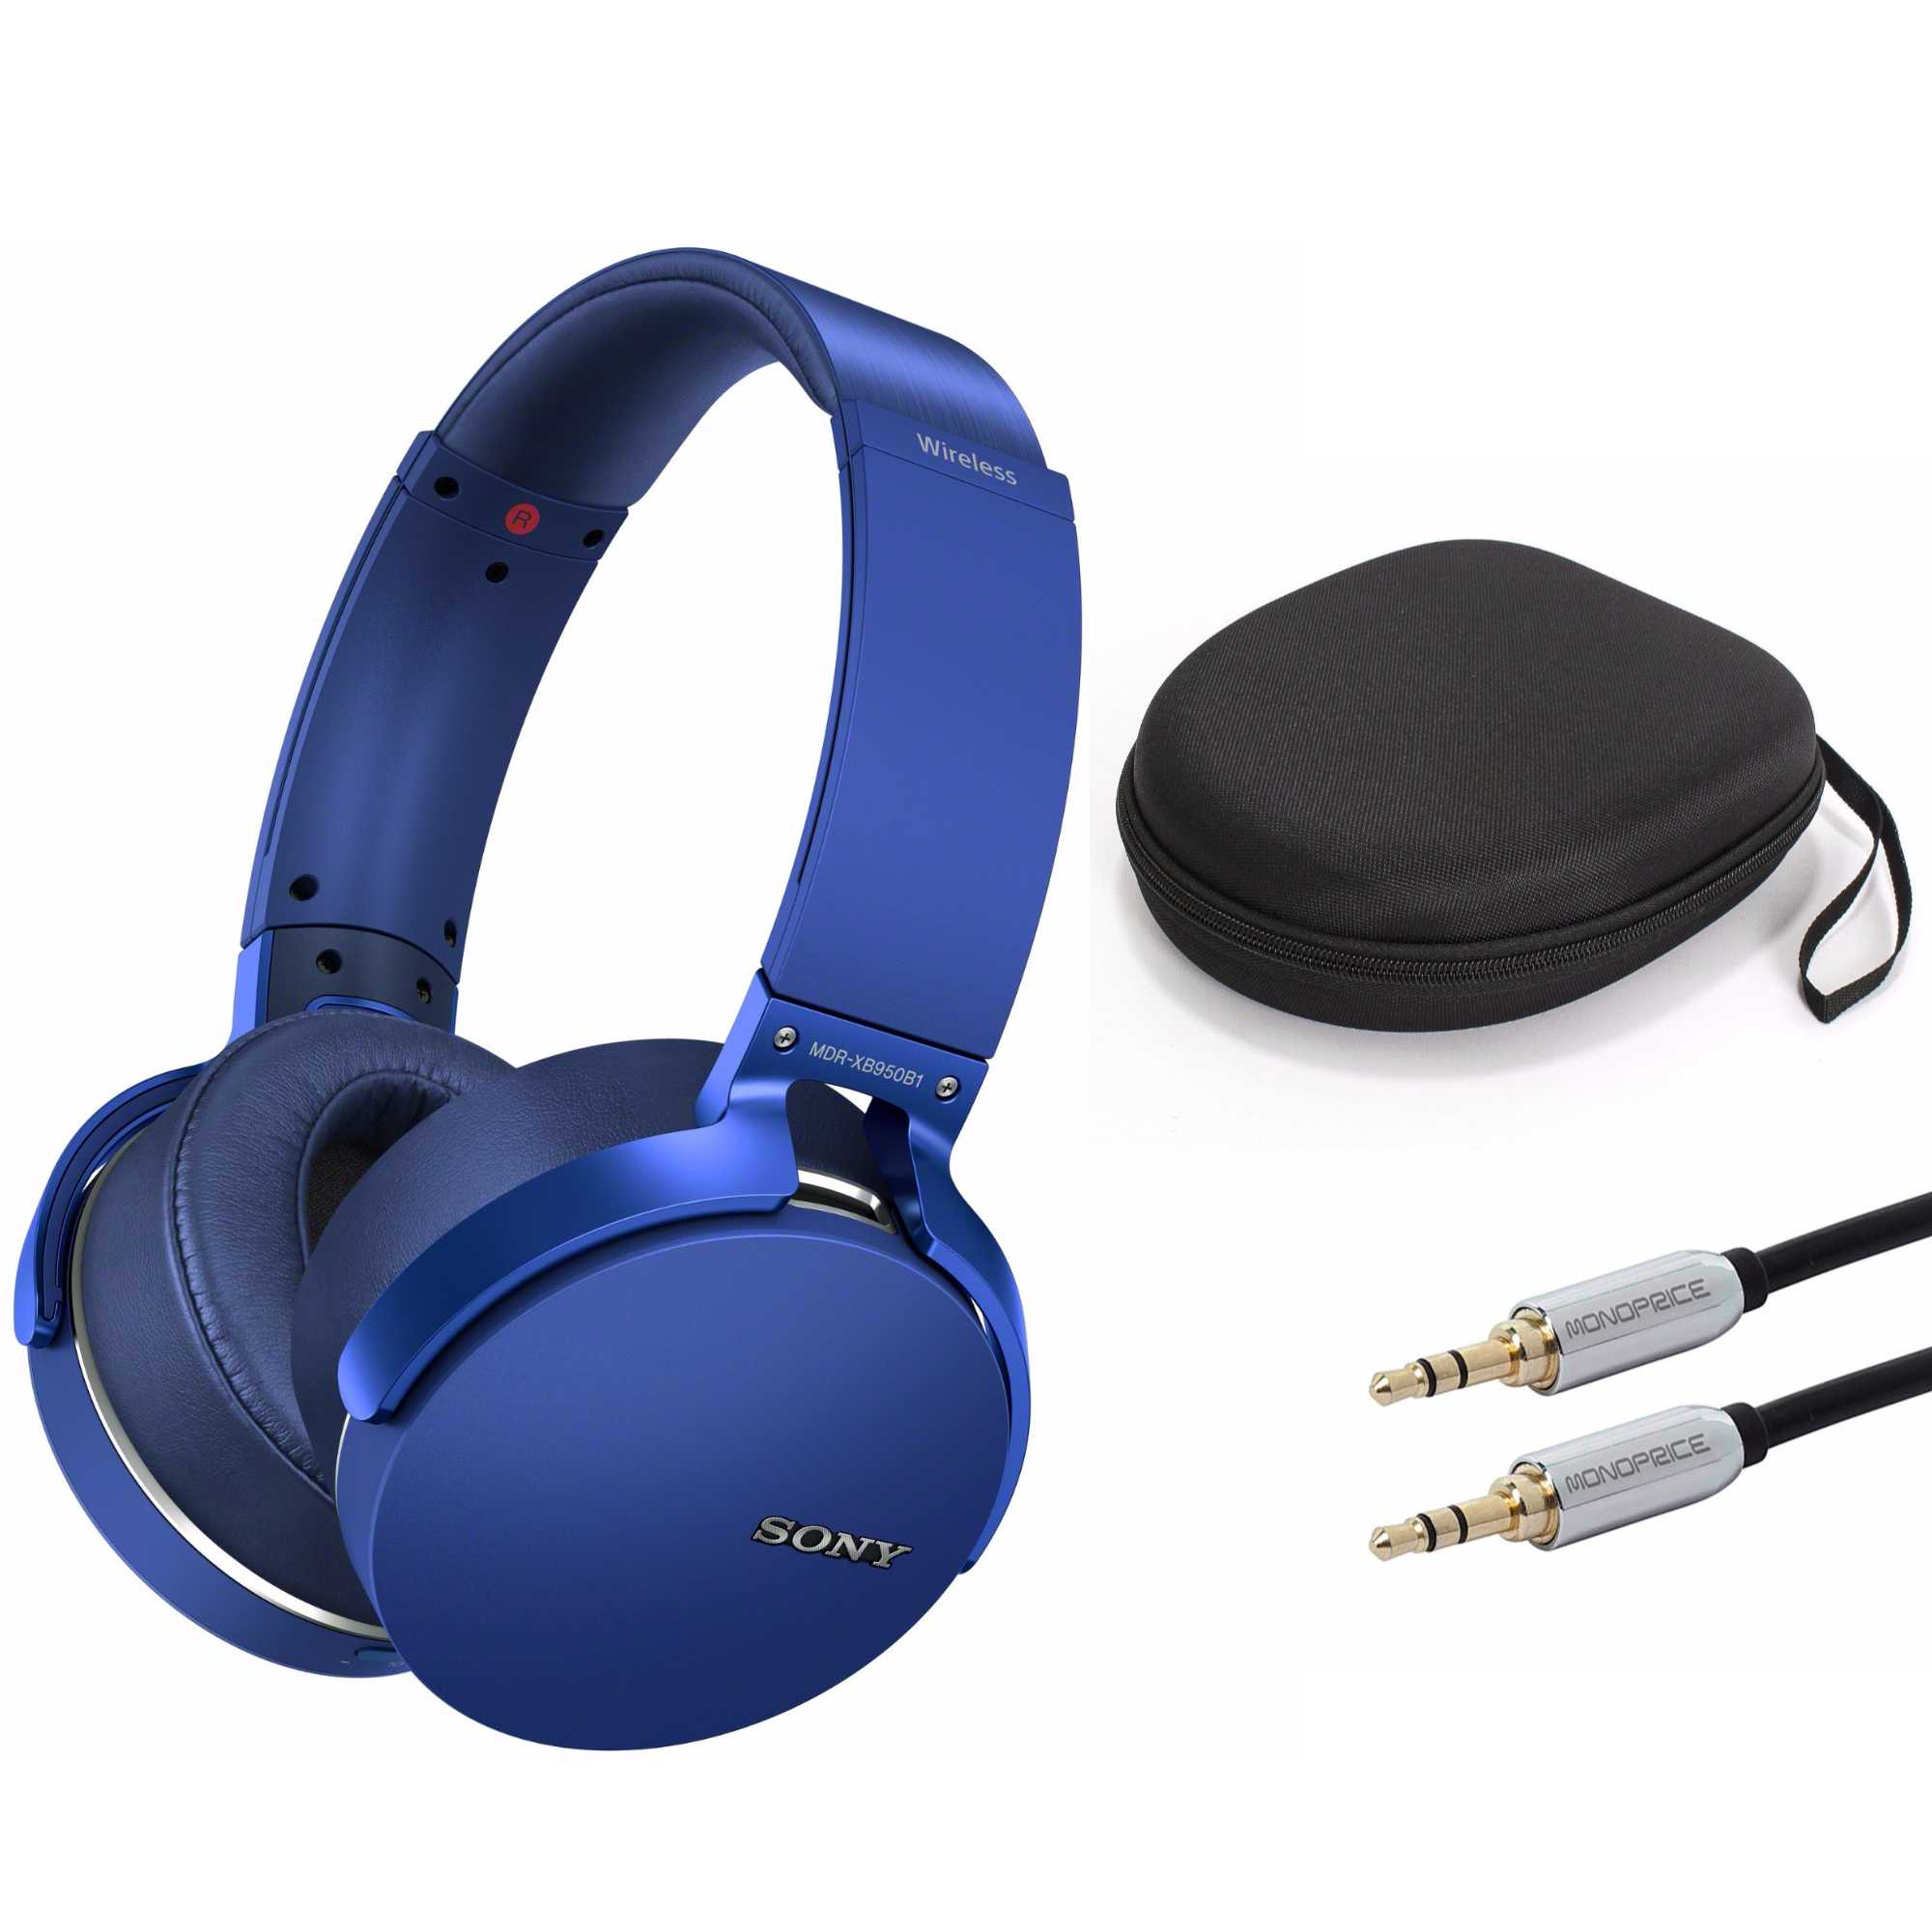 Sony XB950B1 Extra Bass Wireless Headphones (Blue) with Case and 3.5mm Cable